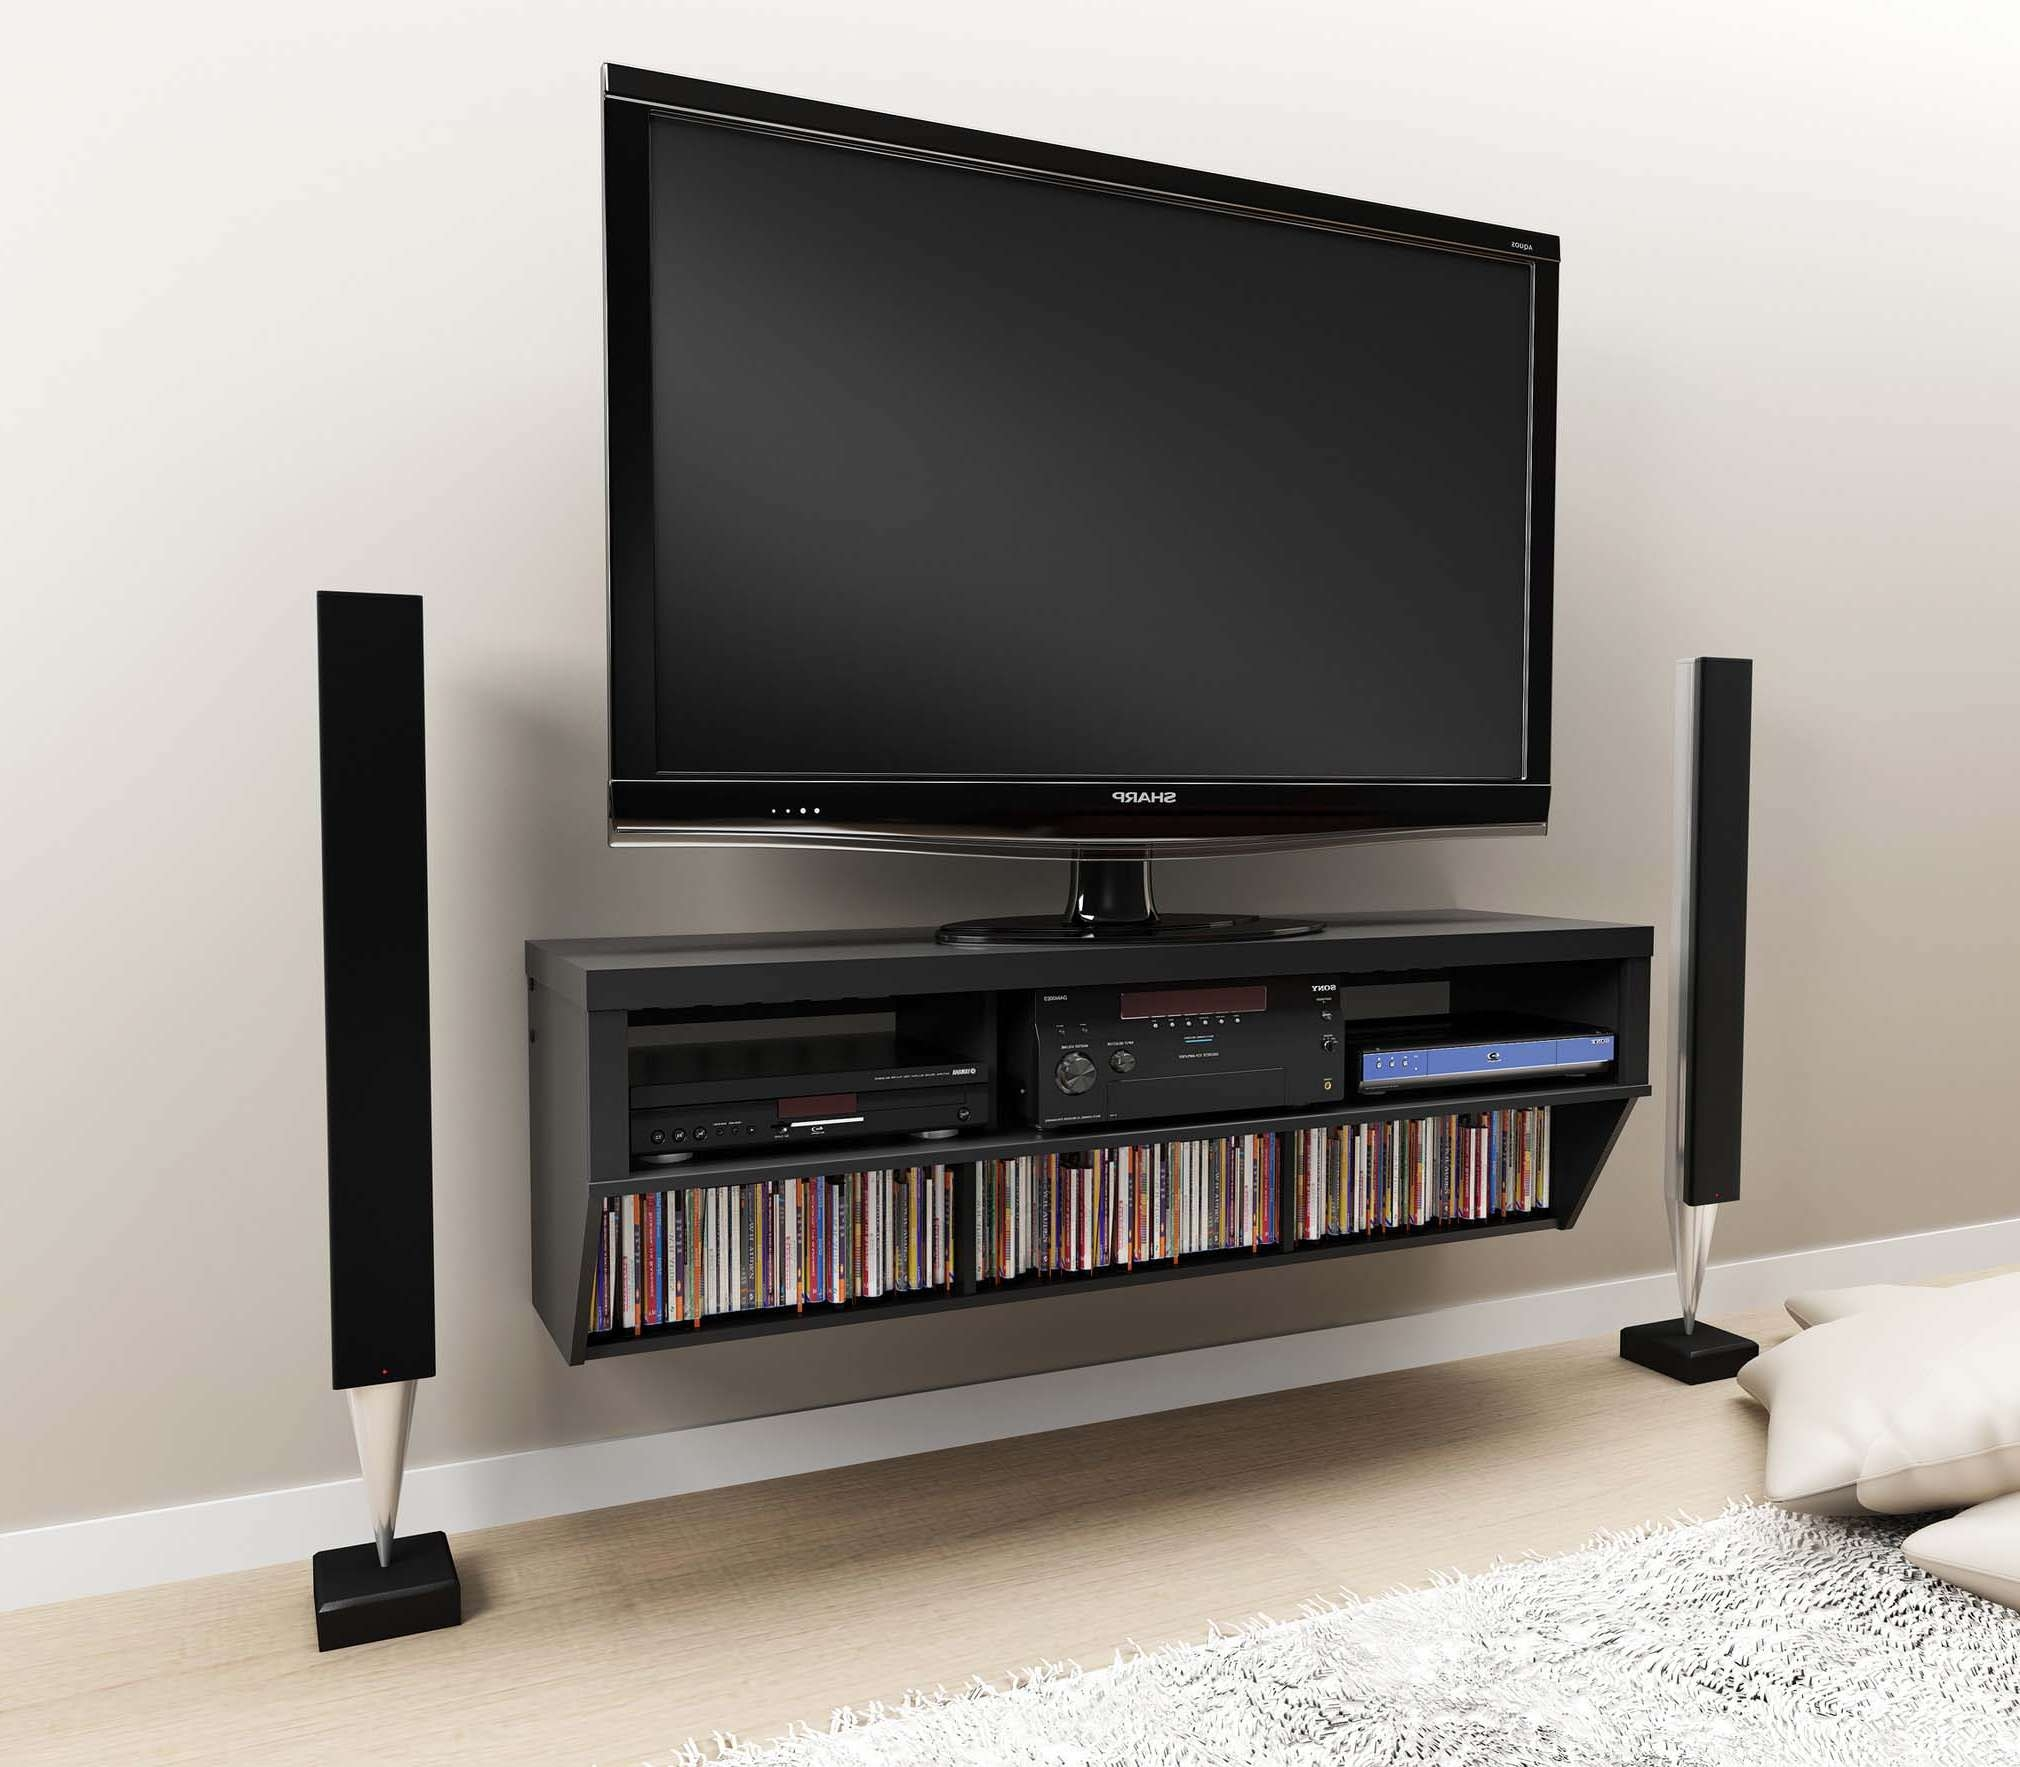 Tv Wall Mount With Shelf Mounted Entertainment Console Media Regarding Wall Mounted Tv Stands For Flat Screens (View 8 of 15)